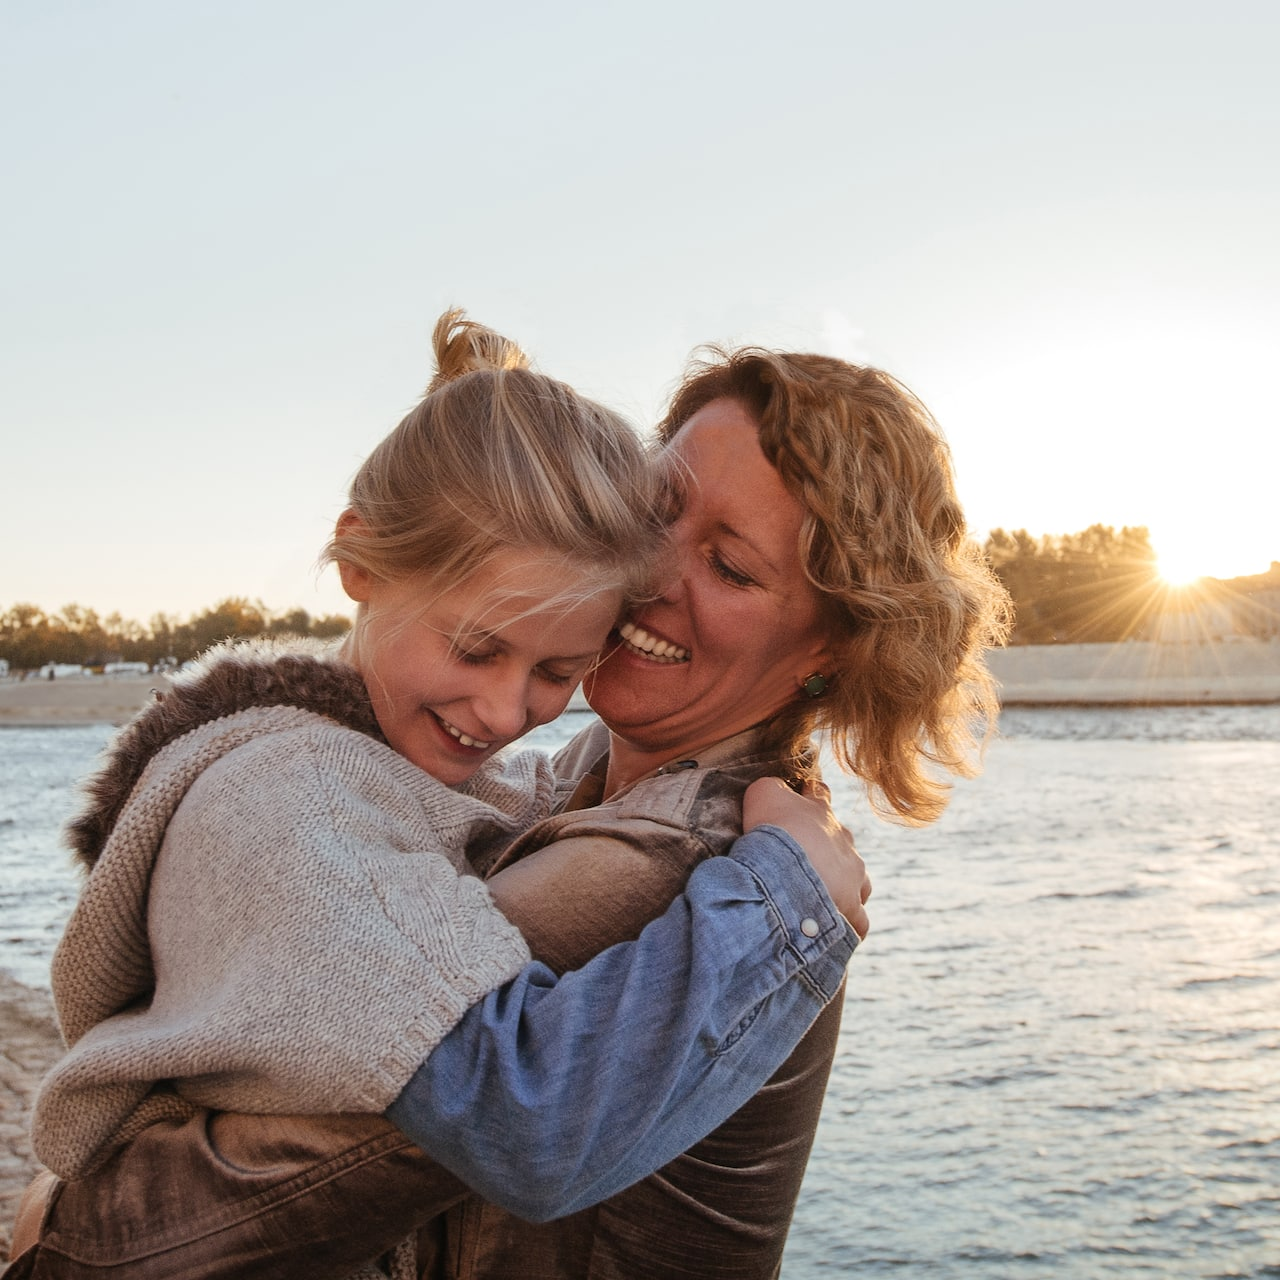 A mom and daughter hug on a path along the Rhône River with a river cruise ship in the background